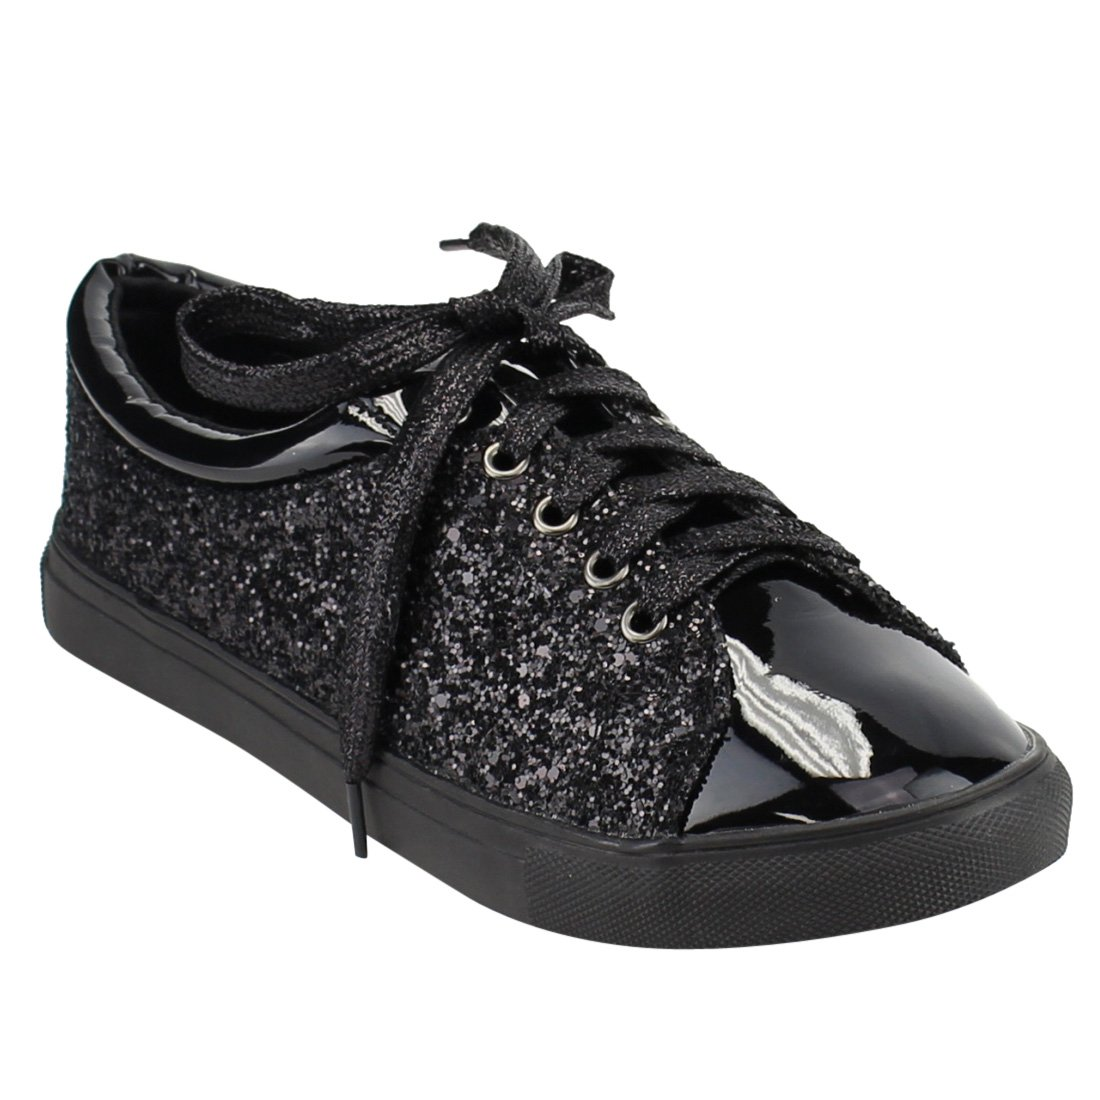 FOREVER FP37 Women's Metallic Glitter Lace up Street Fashion Sneakers B078PBSBT8 9 B(M) US|Black